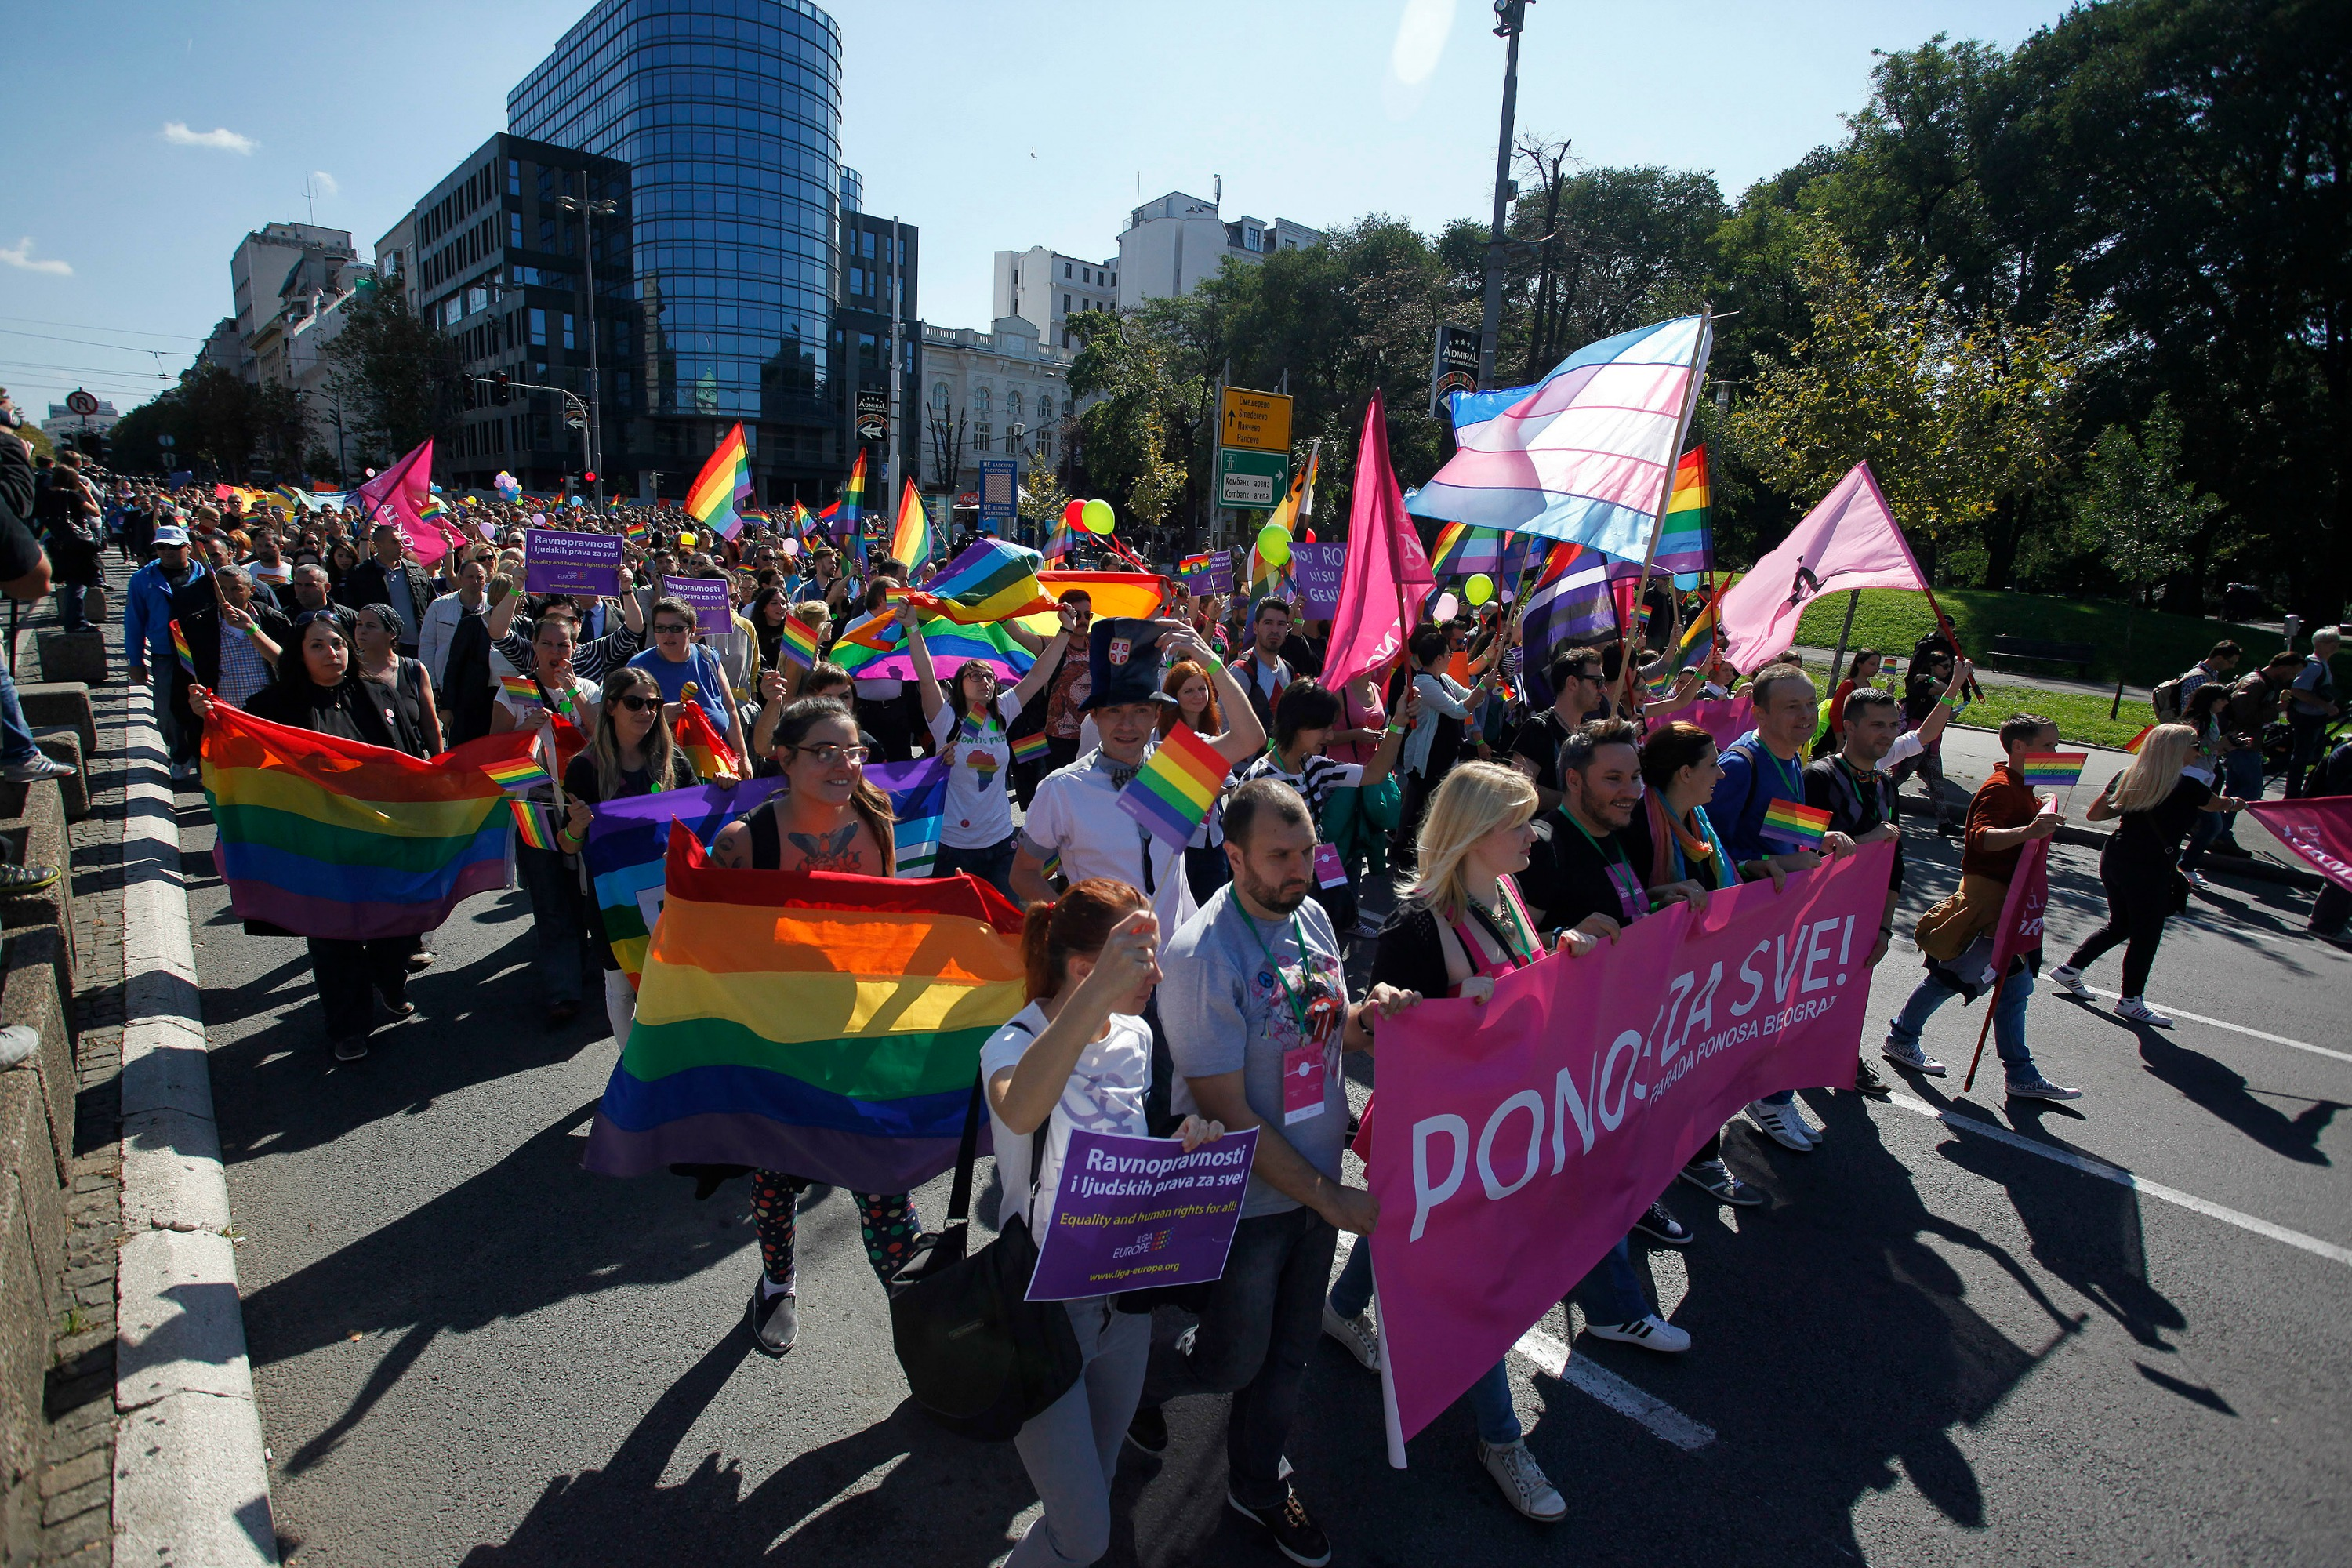 Gay pride in Belgrade 28 September 2014 [Reuters]